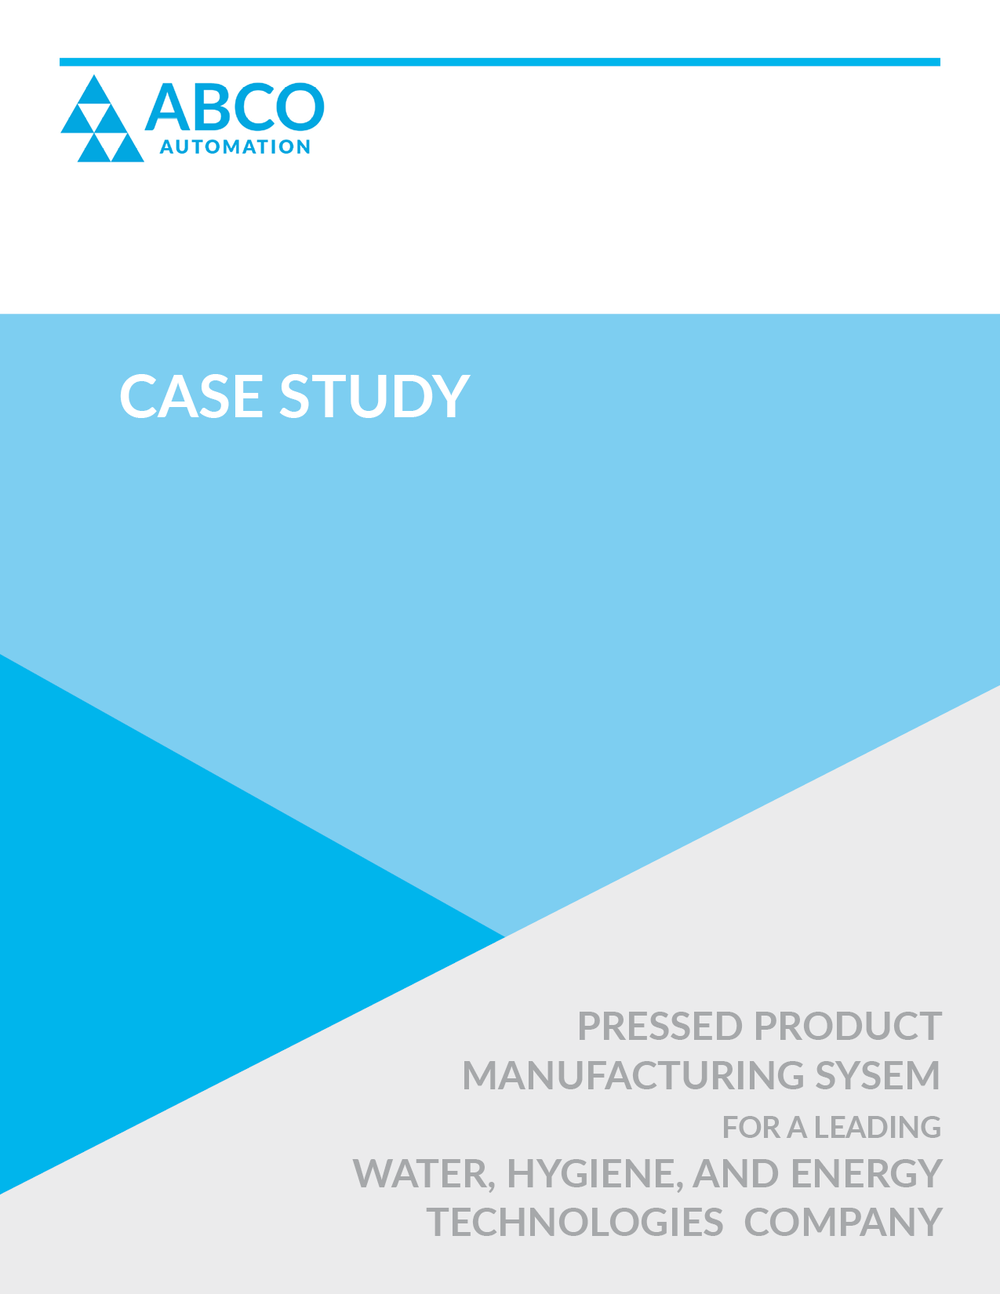 pressed-product-production-line-cover-page-1.png